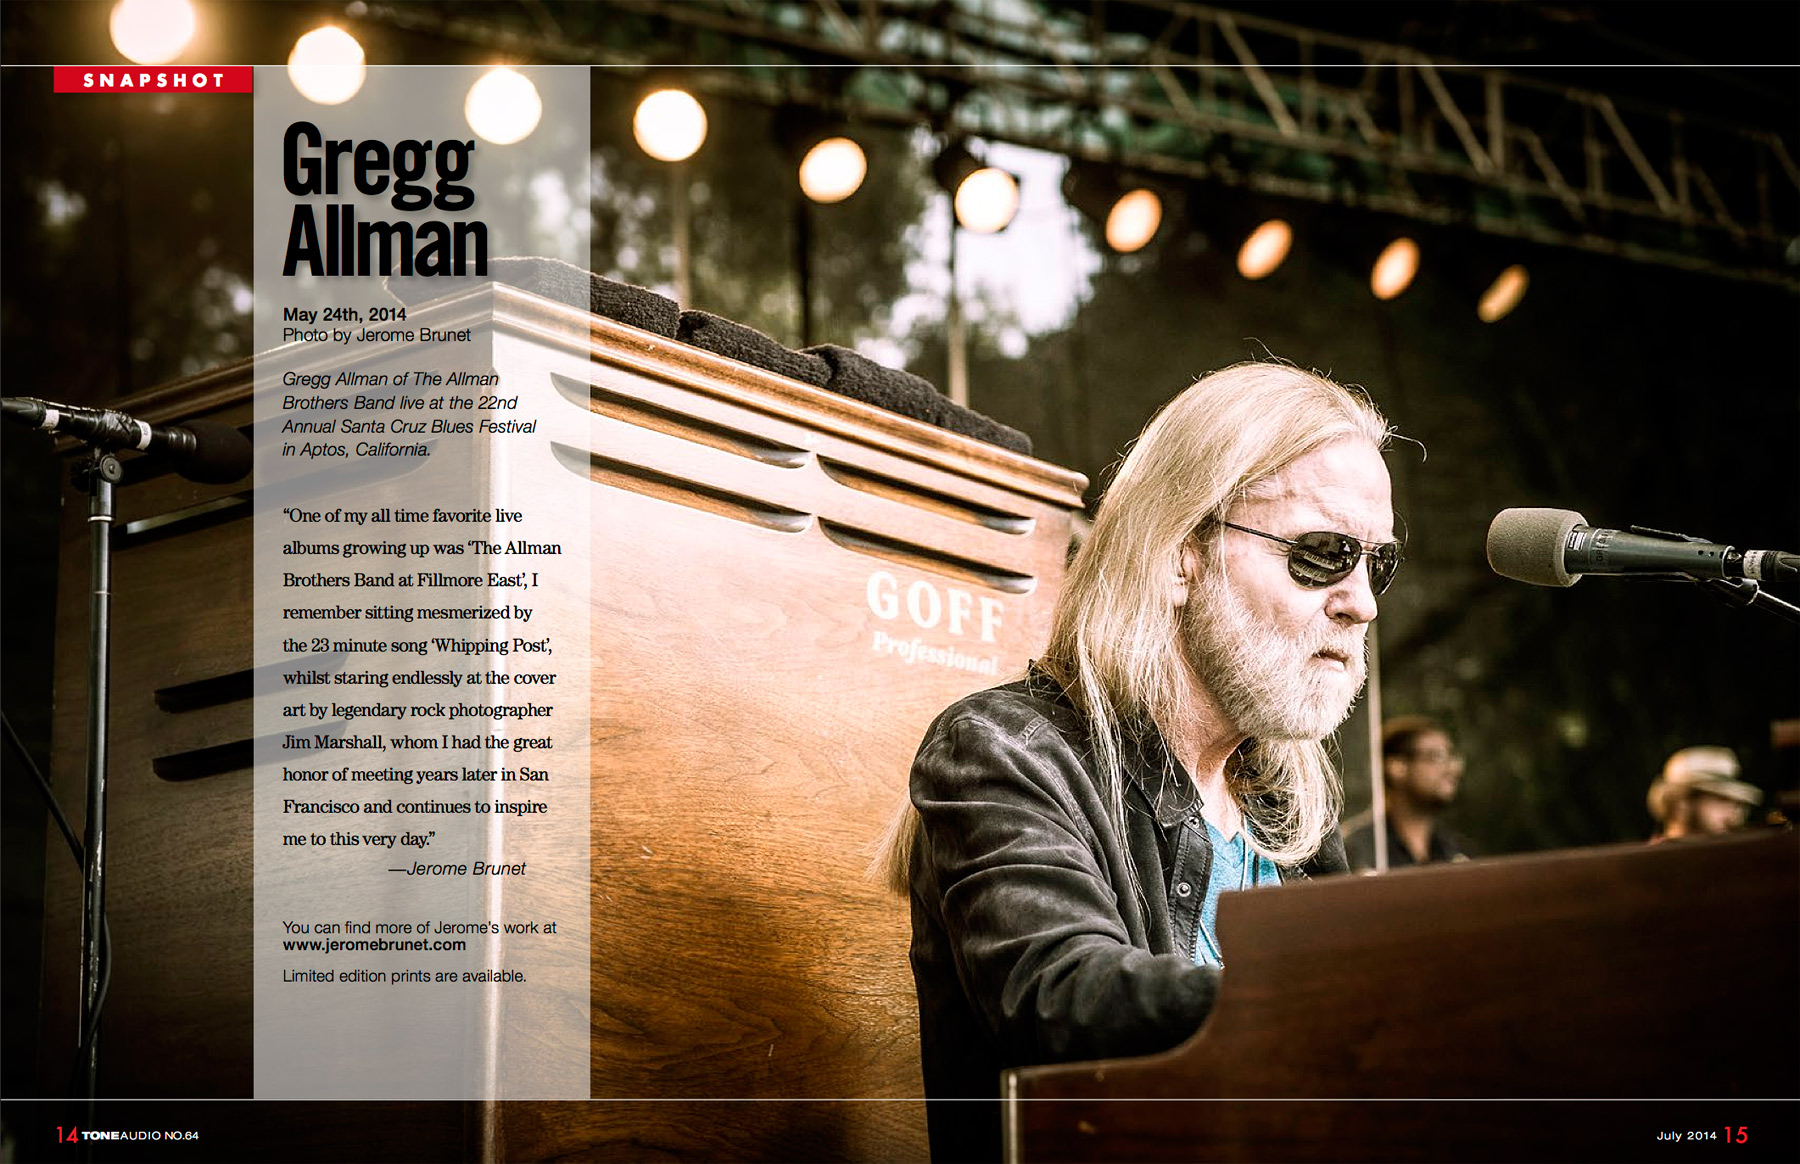 Gregg Allman live at Santa Cruz Blues Festival